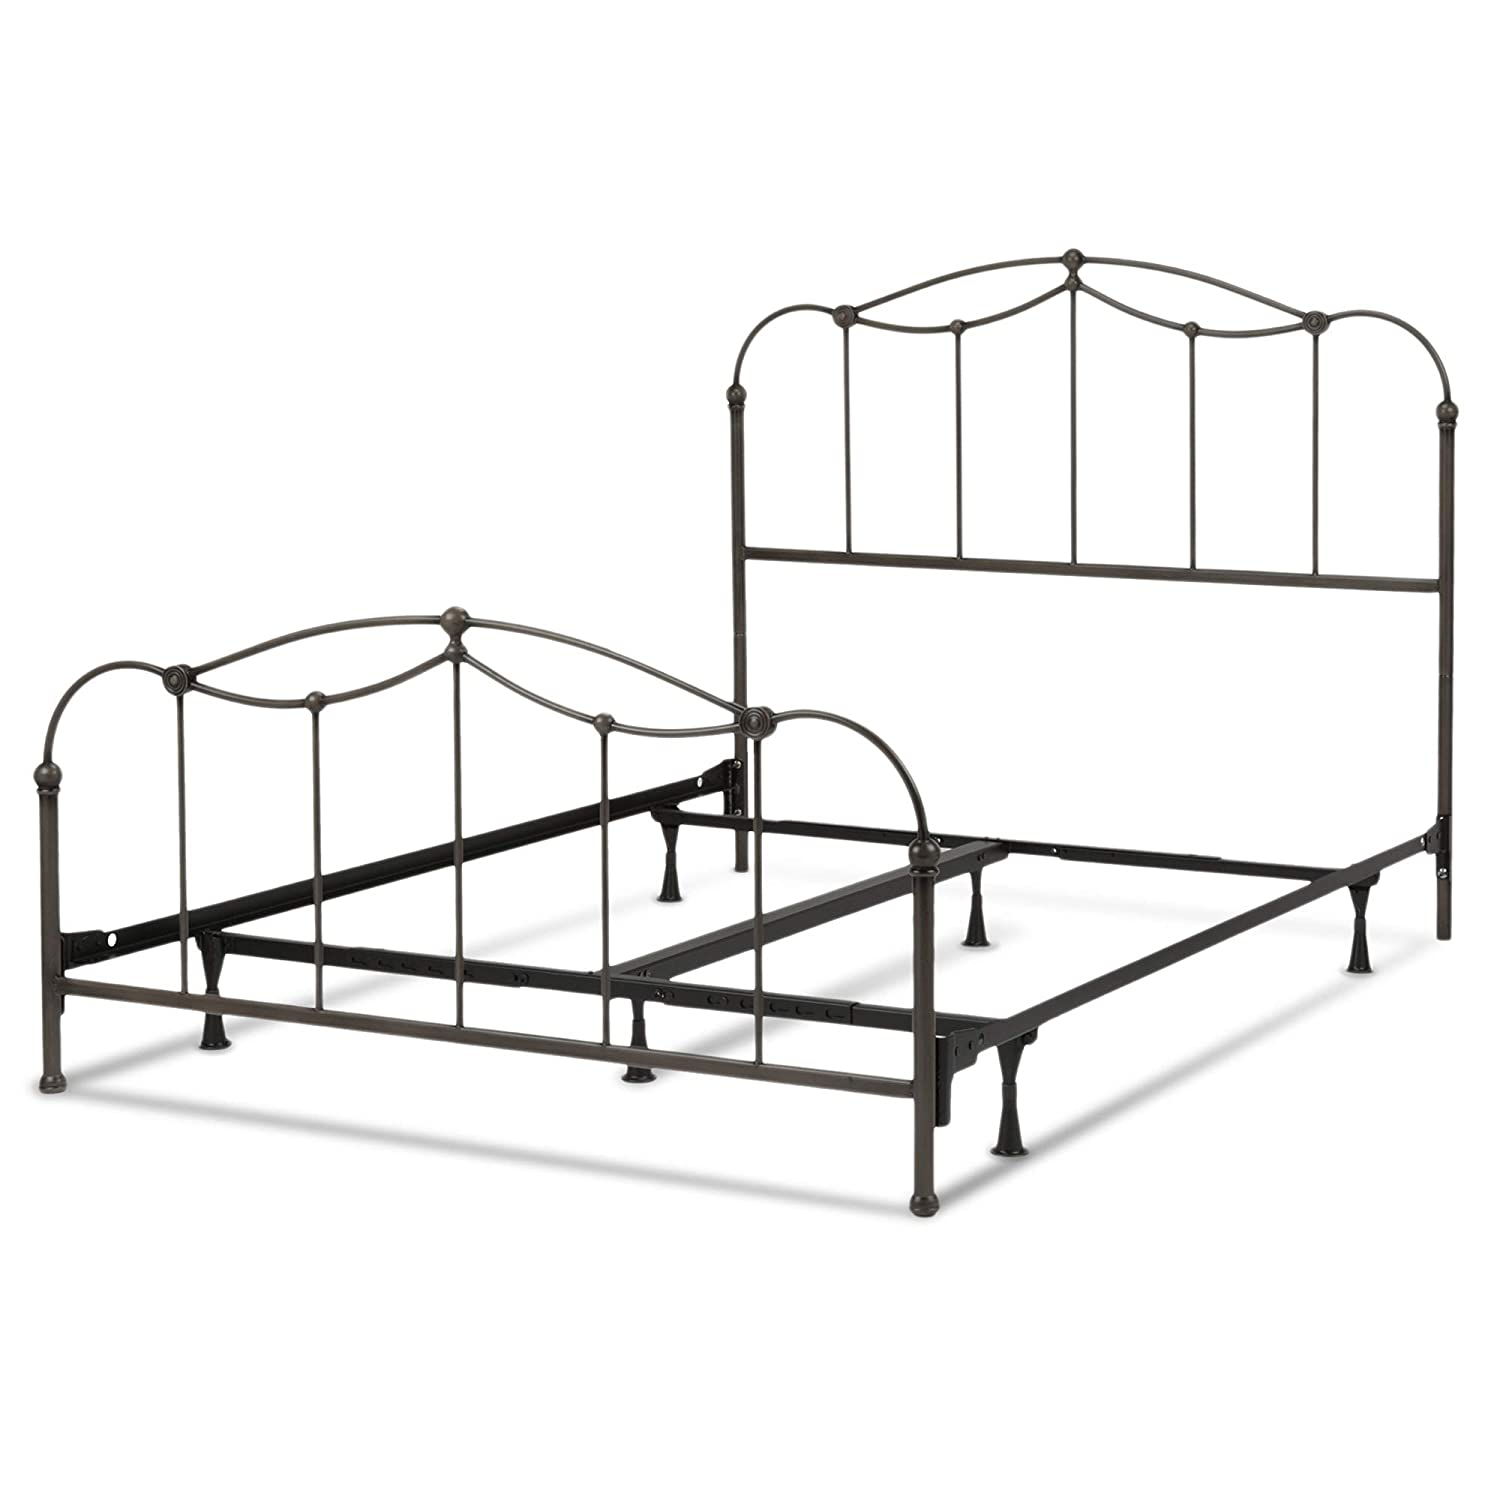 Leggett Platt Affinity Complete Metal Bed and Steel Support Frame with Spindle Panels and Detailed Castings, Blackened Taupe Finish, Full